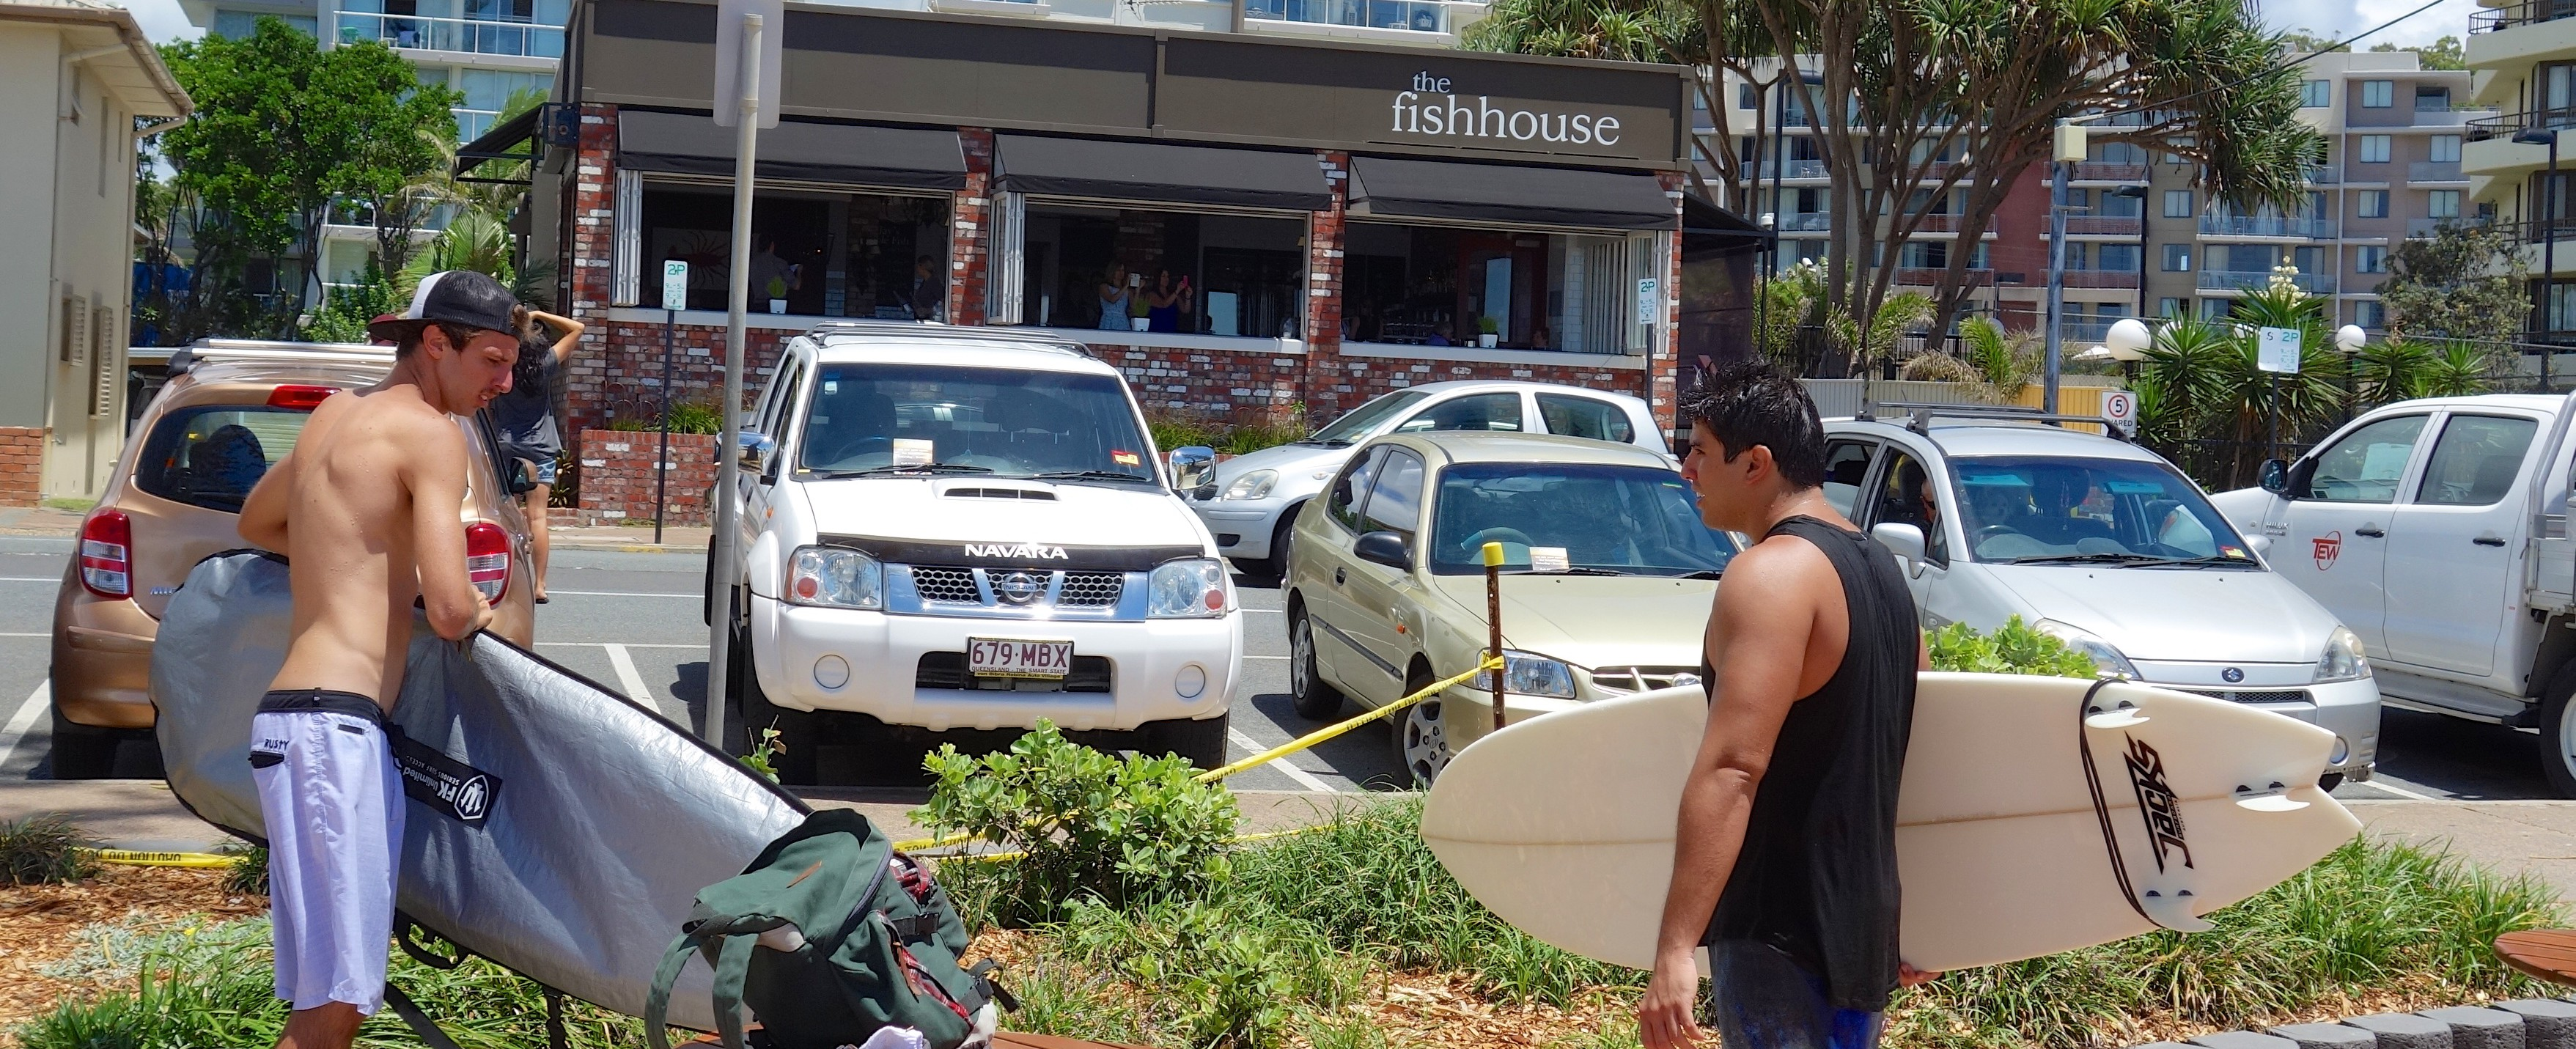 The Fishhouse Restaurant at Burleigh